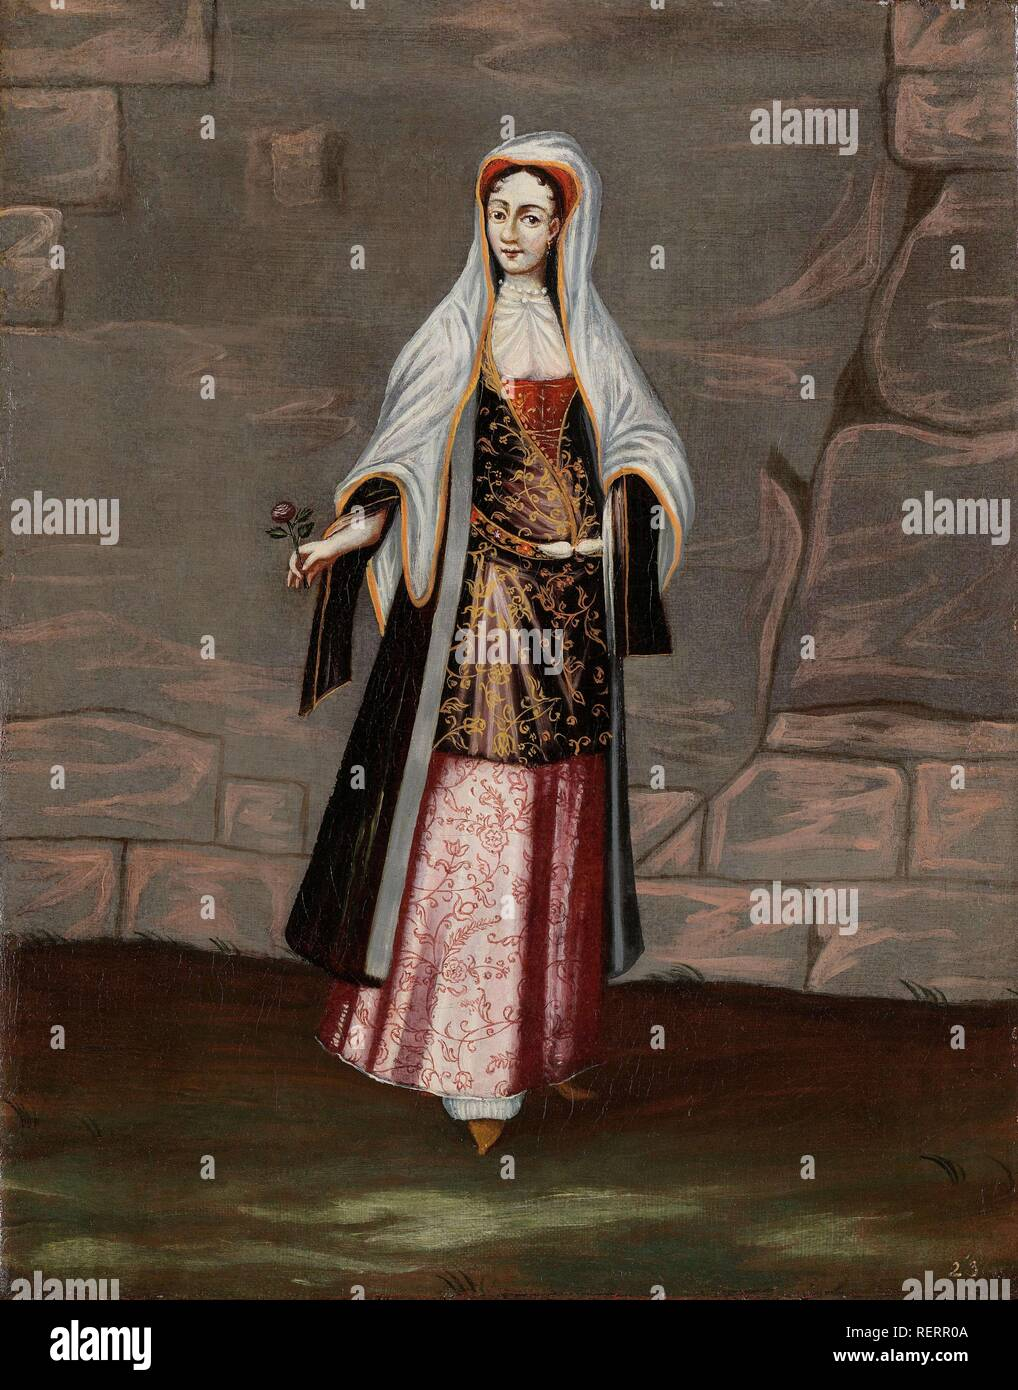 Woman from the Island of Mykonos. Dating: 1700 - 1737. Place: Istanbul. Measurements: h 39 cm × w 30.5 cm. Museum: Rijksmuseum, Amsterdam. Author: Jean Baptiste Vanmour (workshop of). - Stock Image